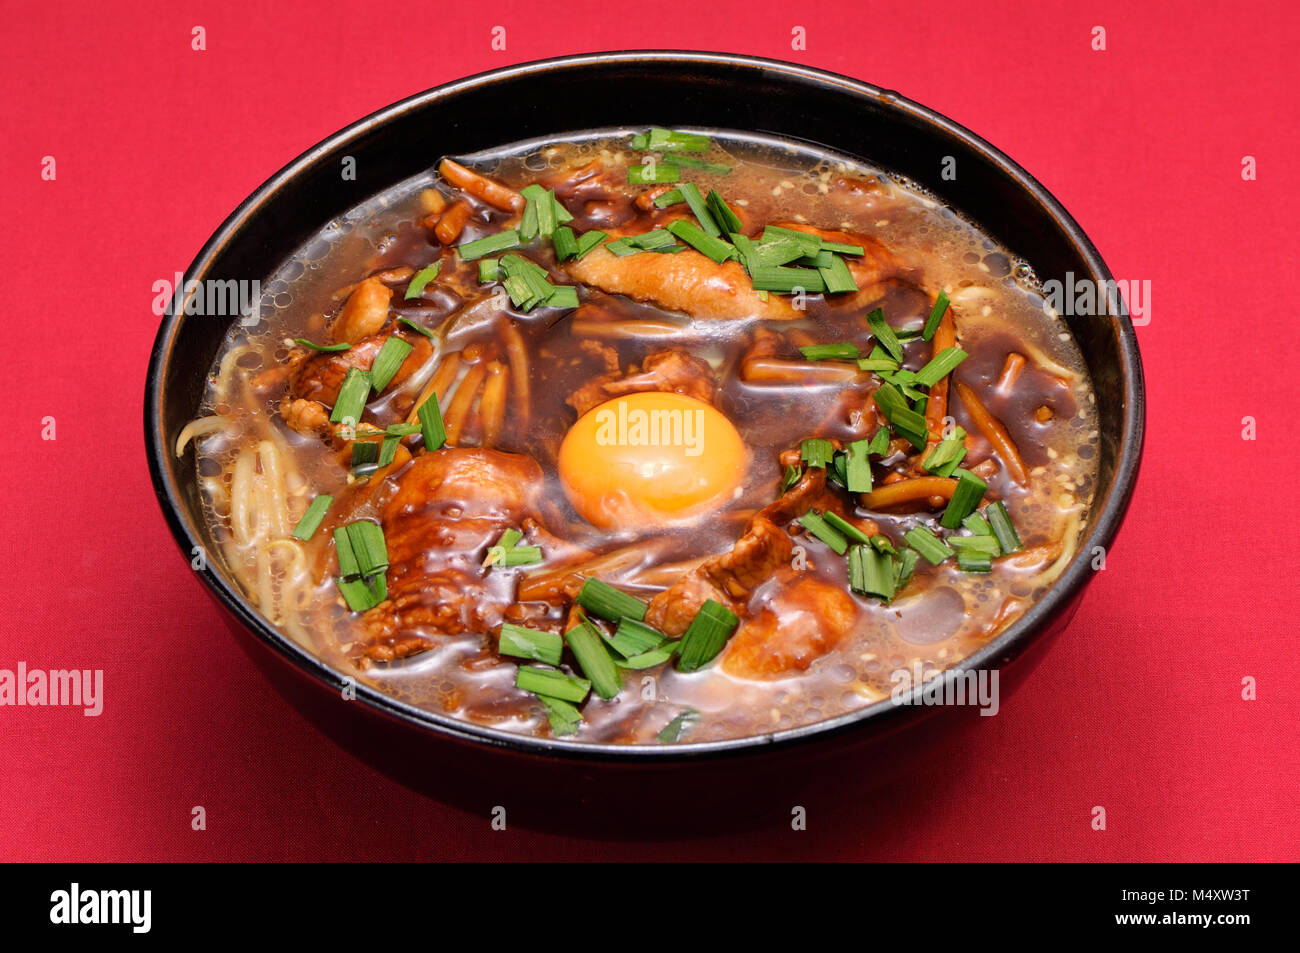 Dandan noodles with raw egg - Stock Image